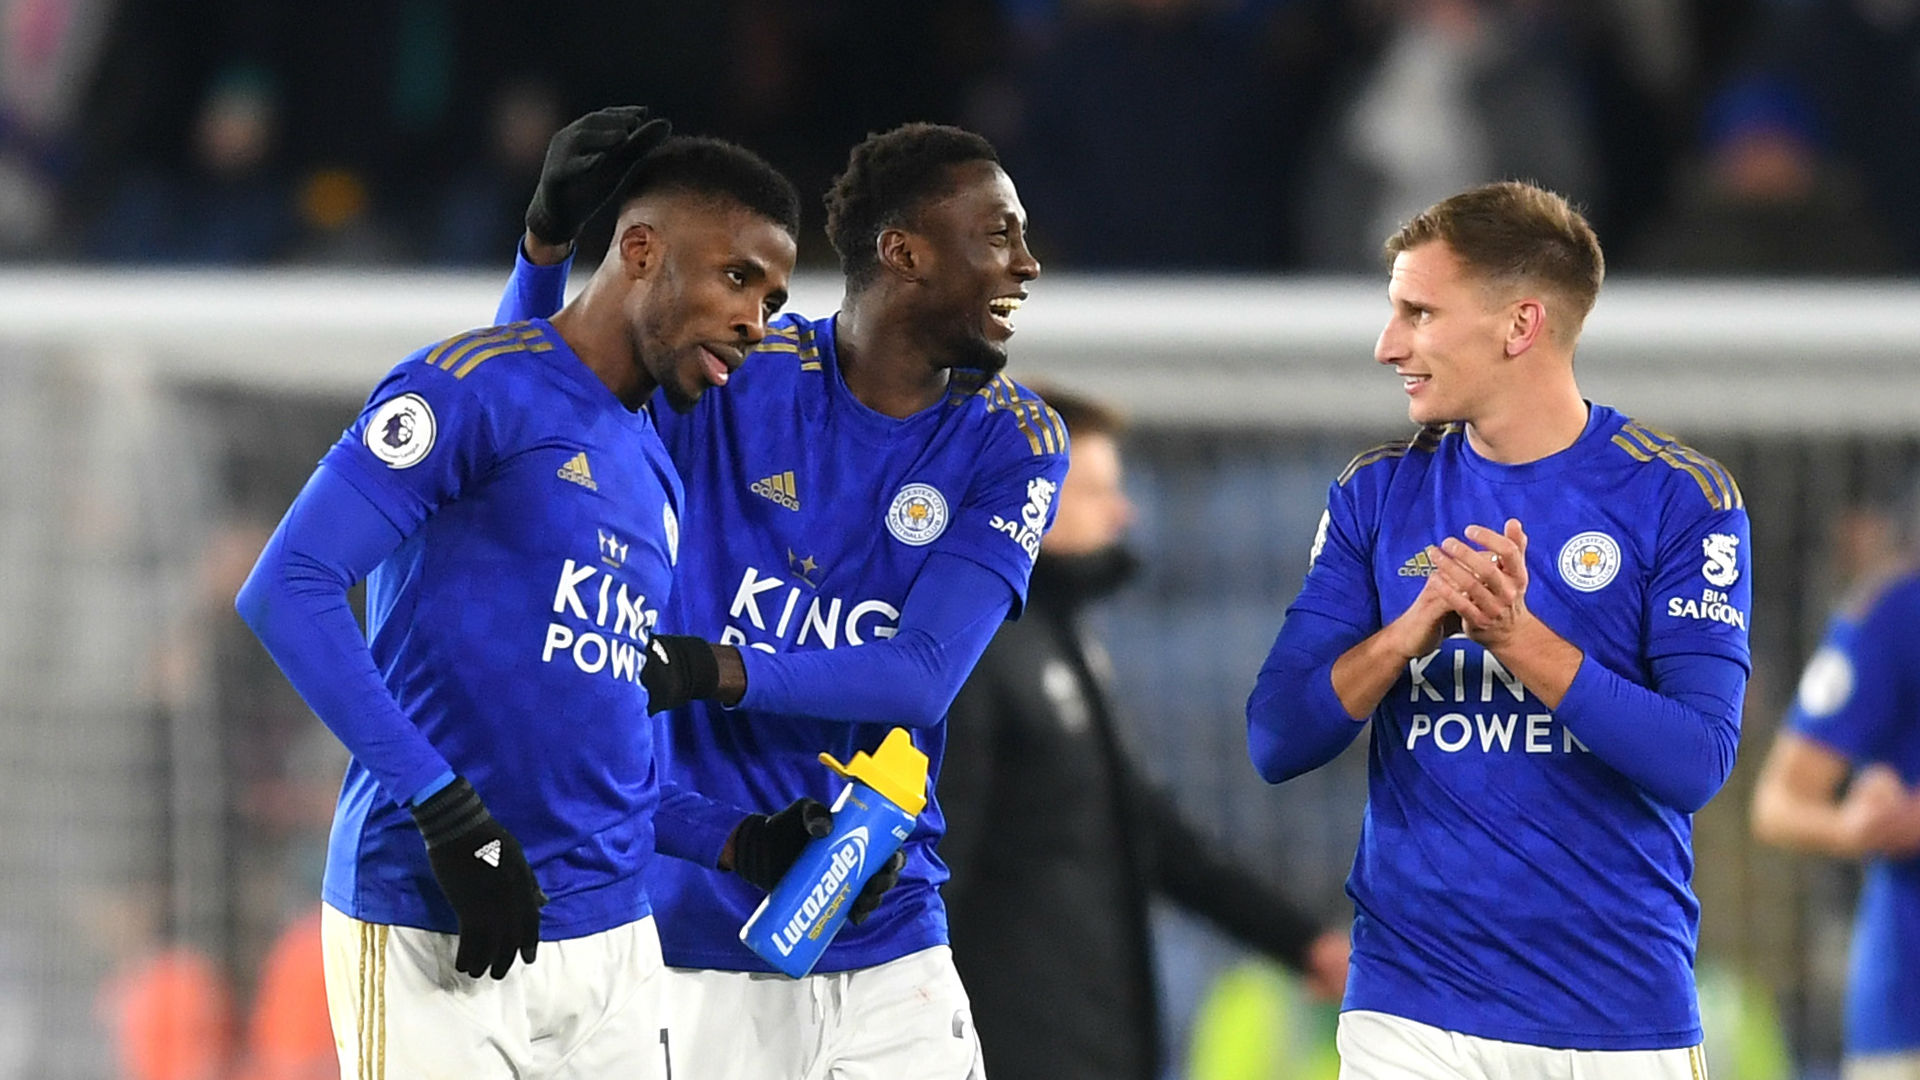 Iheanacho on target for Leicester City as Vardy scores 100th premier league goal